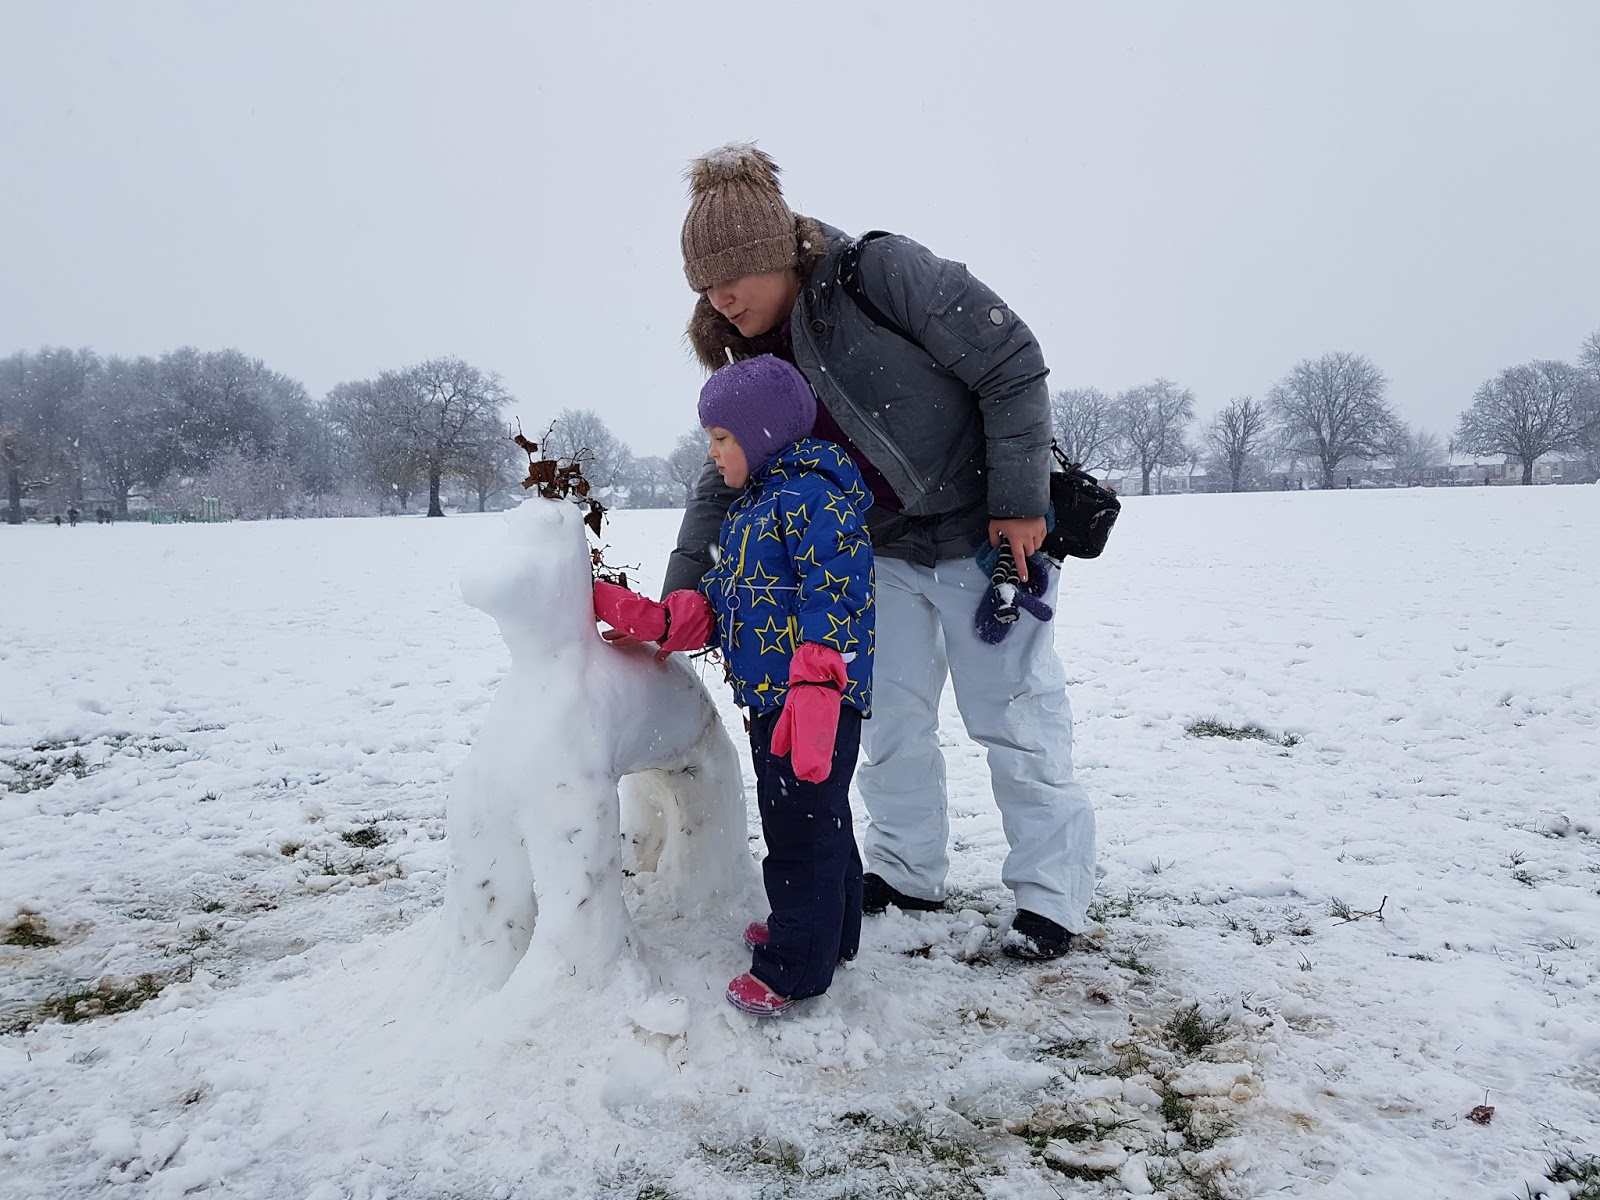 mum and daughter petting the snow pony